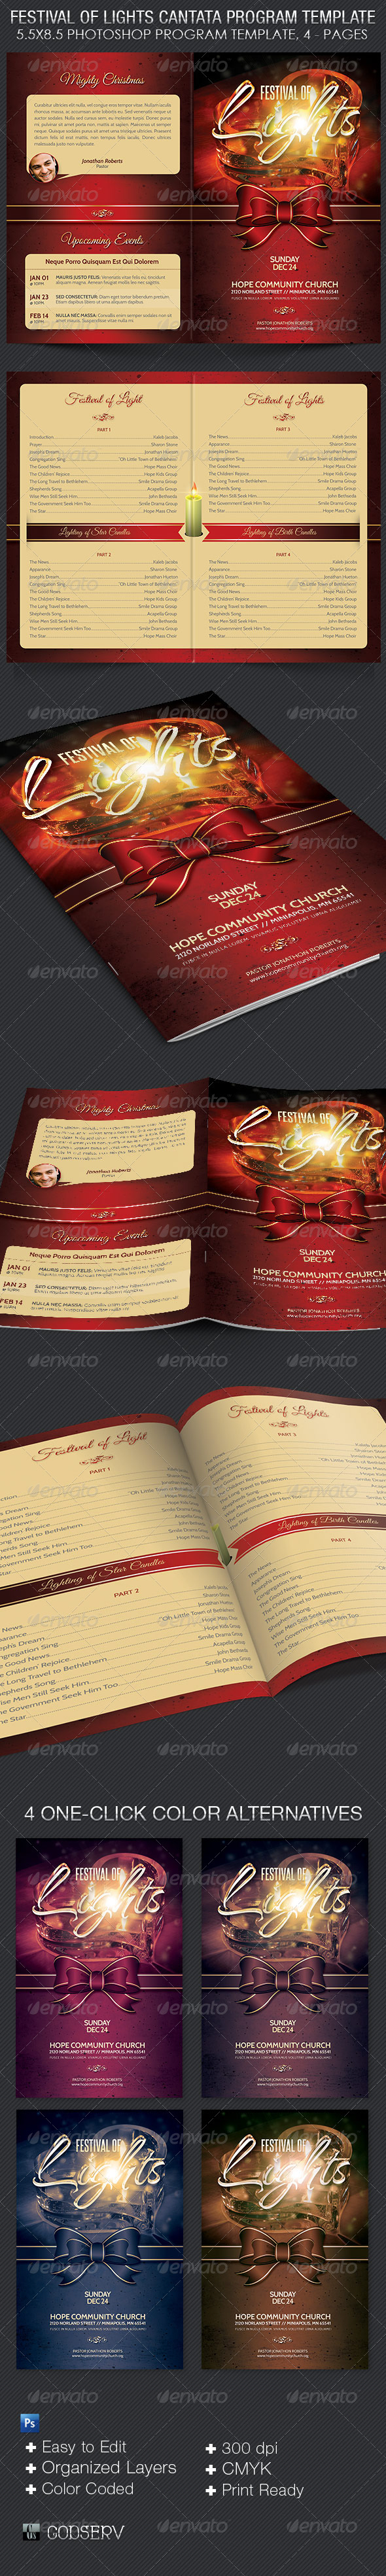 Festival of Lights Christmas Program Template - Informational Brochures